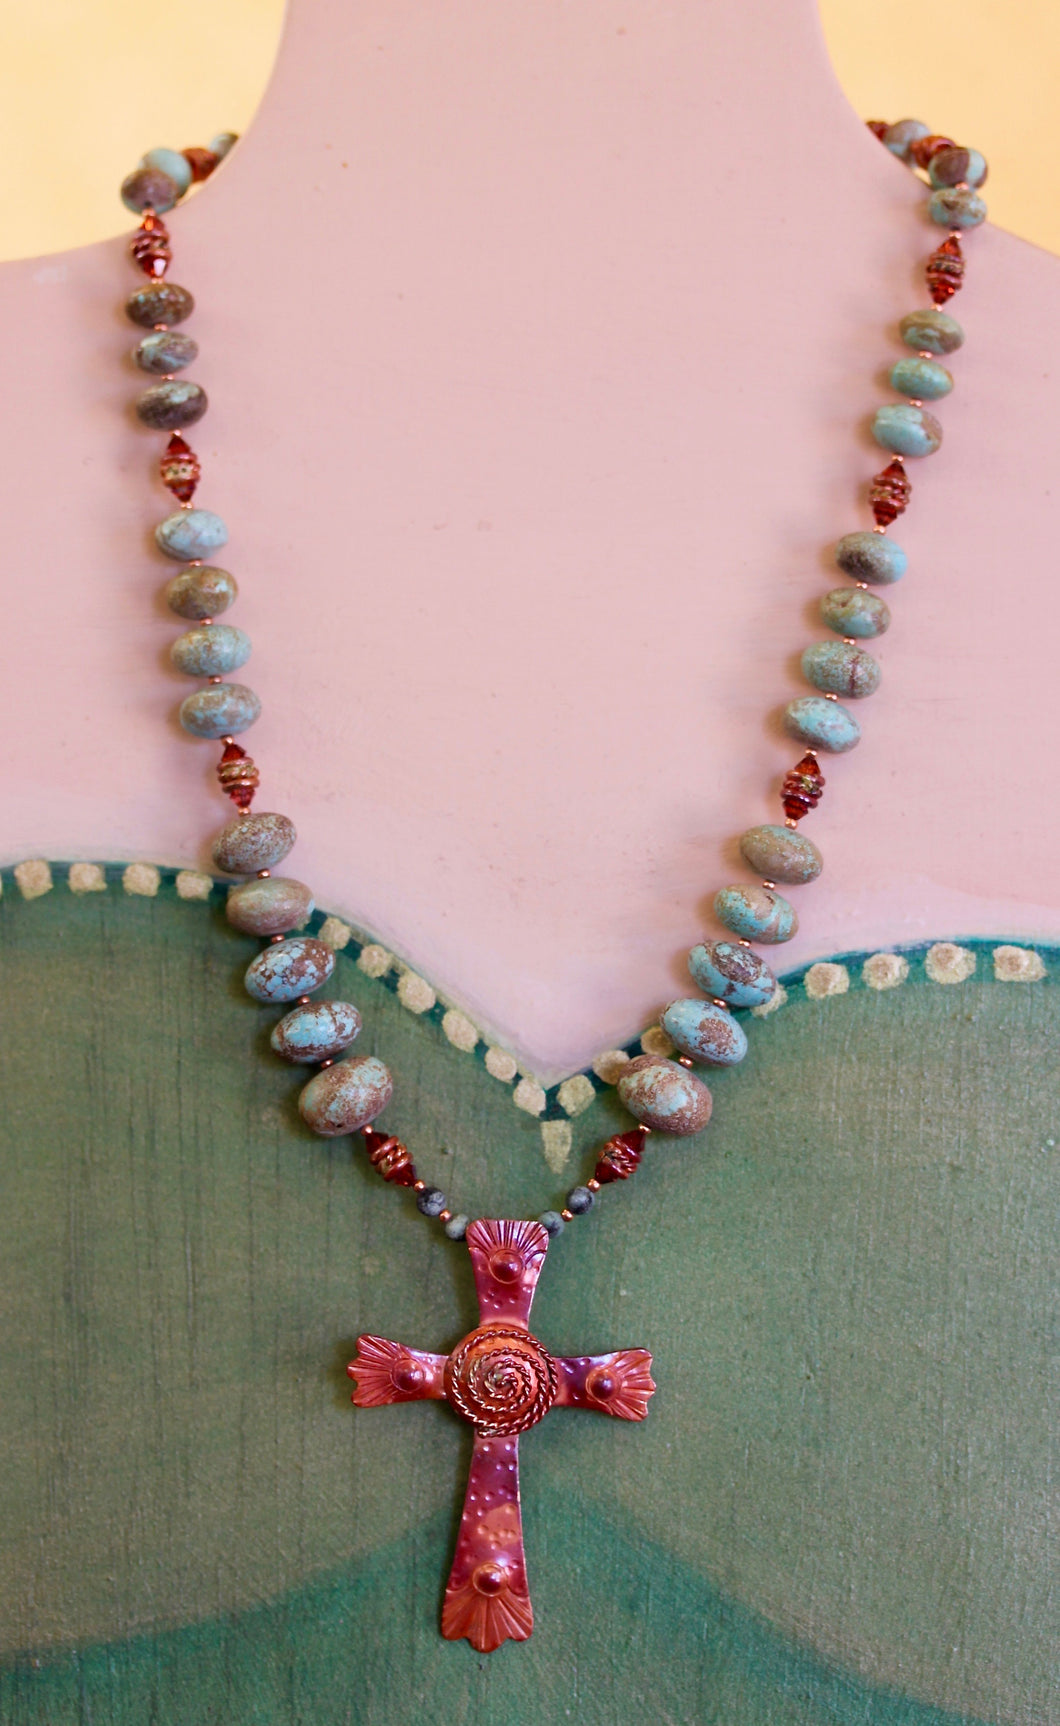 Big Cross with Swirl Finished Necklace